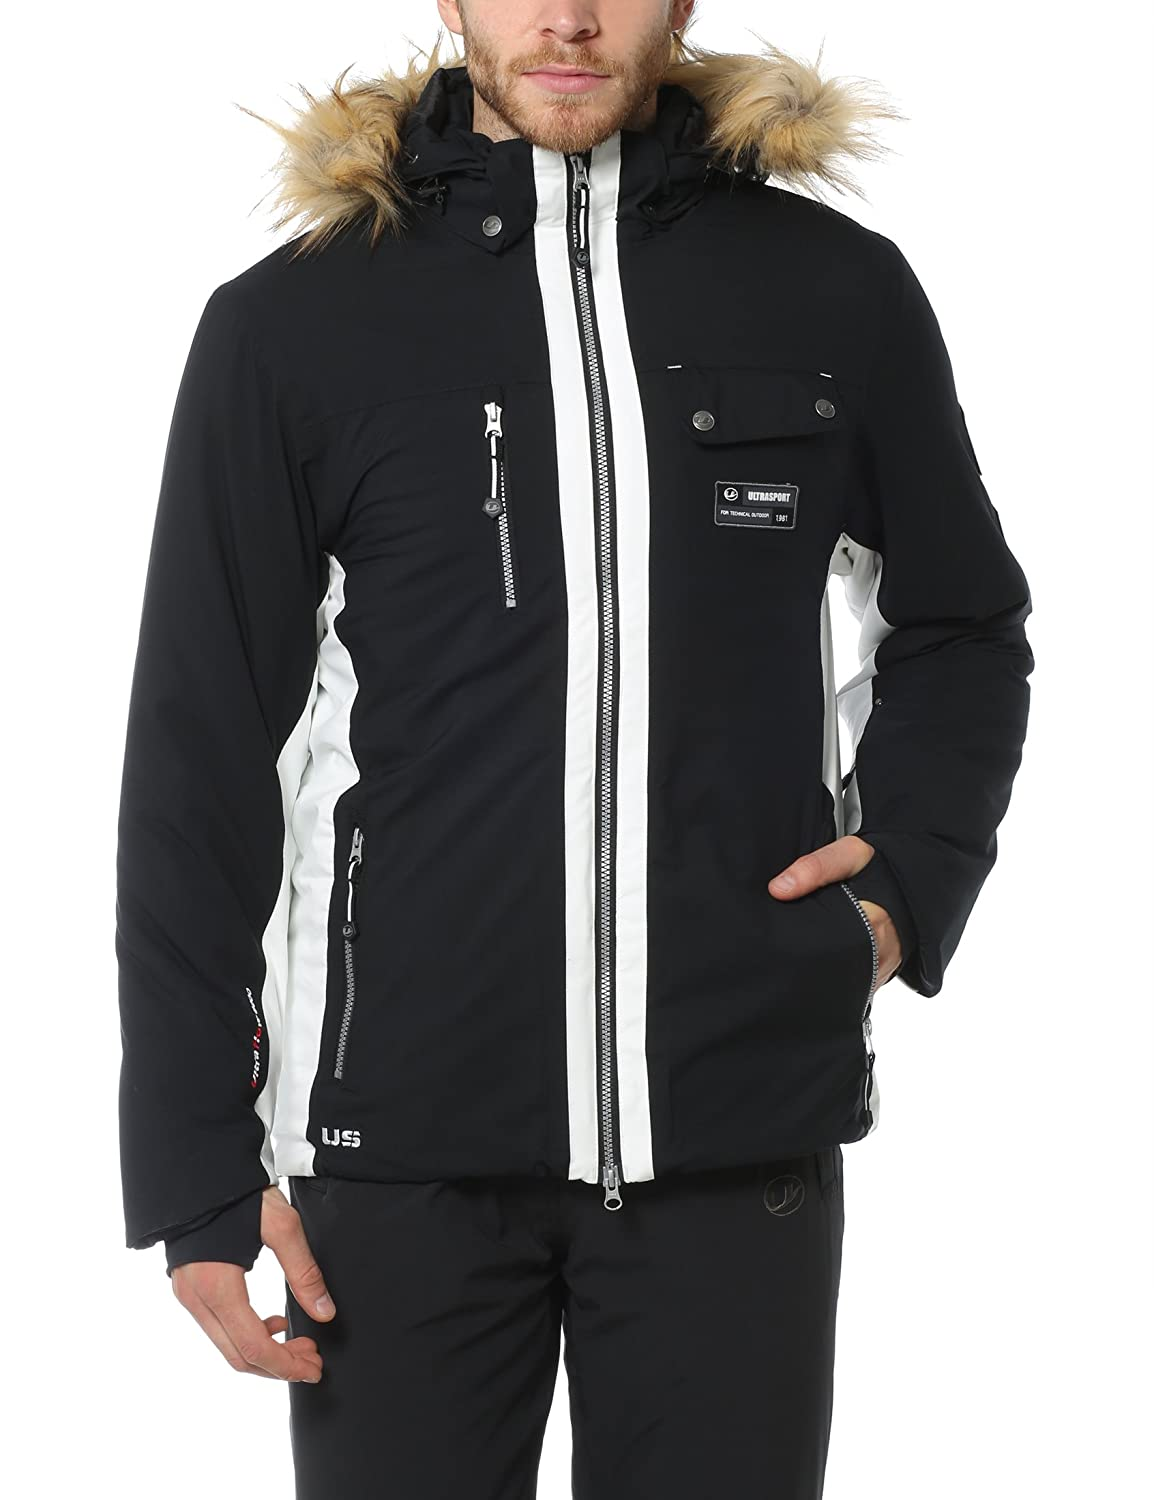 Ultrasport Herren-Funktions-Alpin-Outdoorjacke Softshell Snowfox mit Ultraflow 8.000